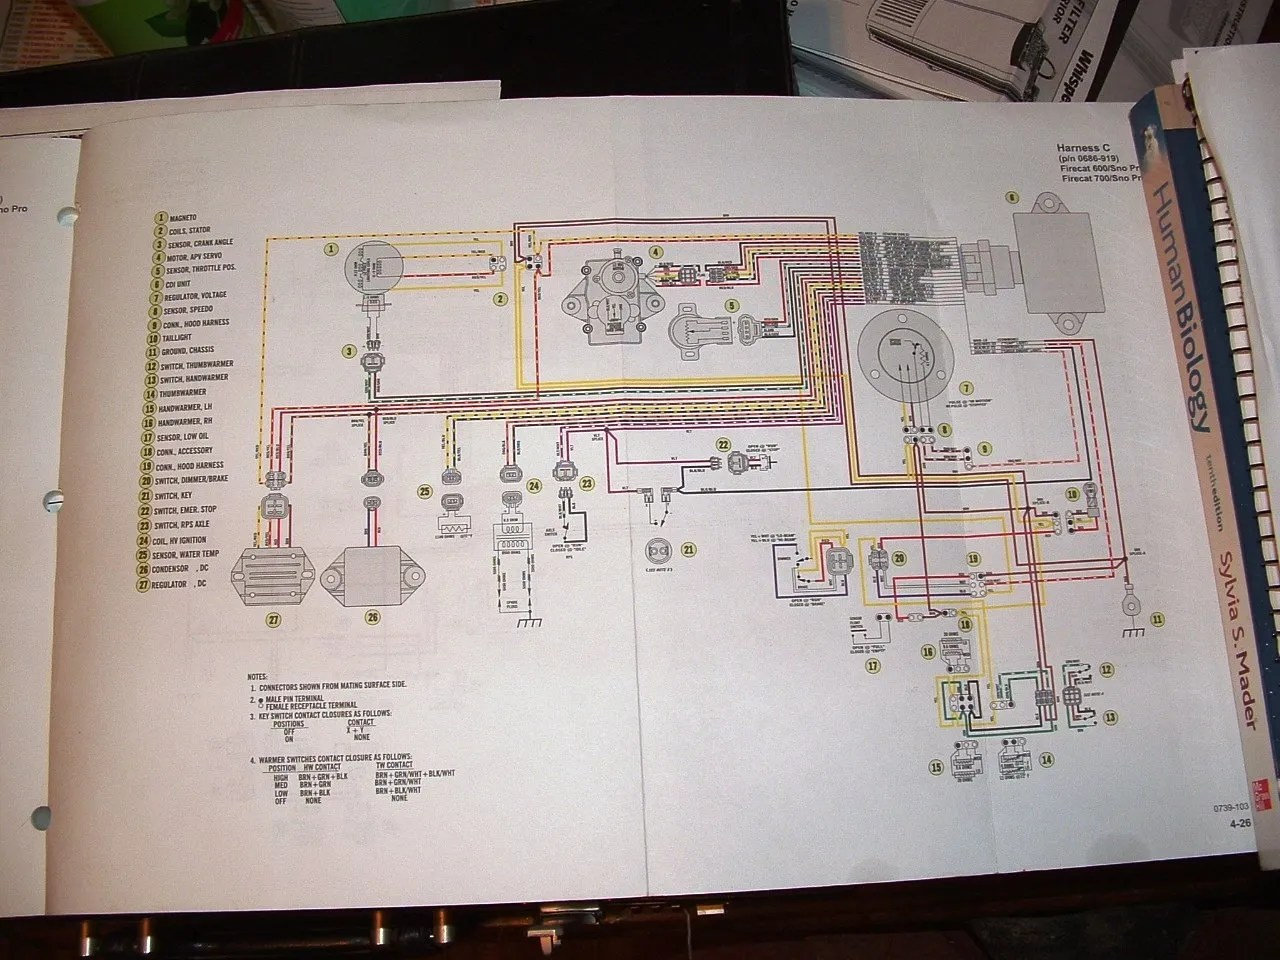 hight resolution of arctic cat f7 wiring diagram schematics wiring diagrams u2022 rh parntesis co arctic cat 400 wiring